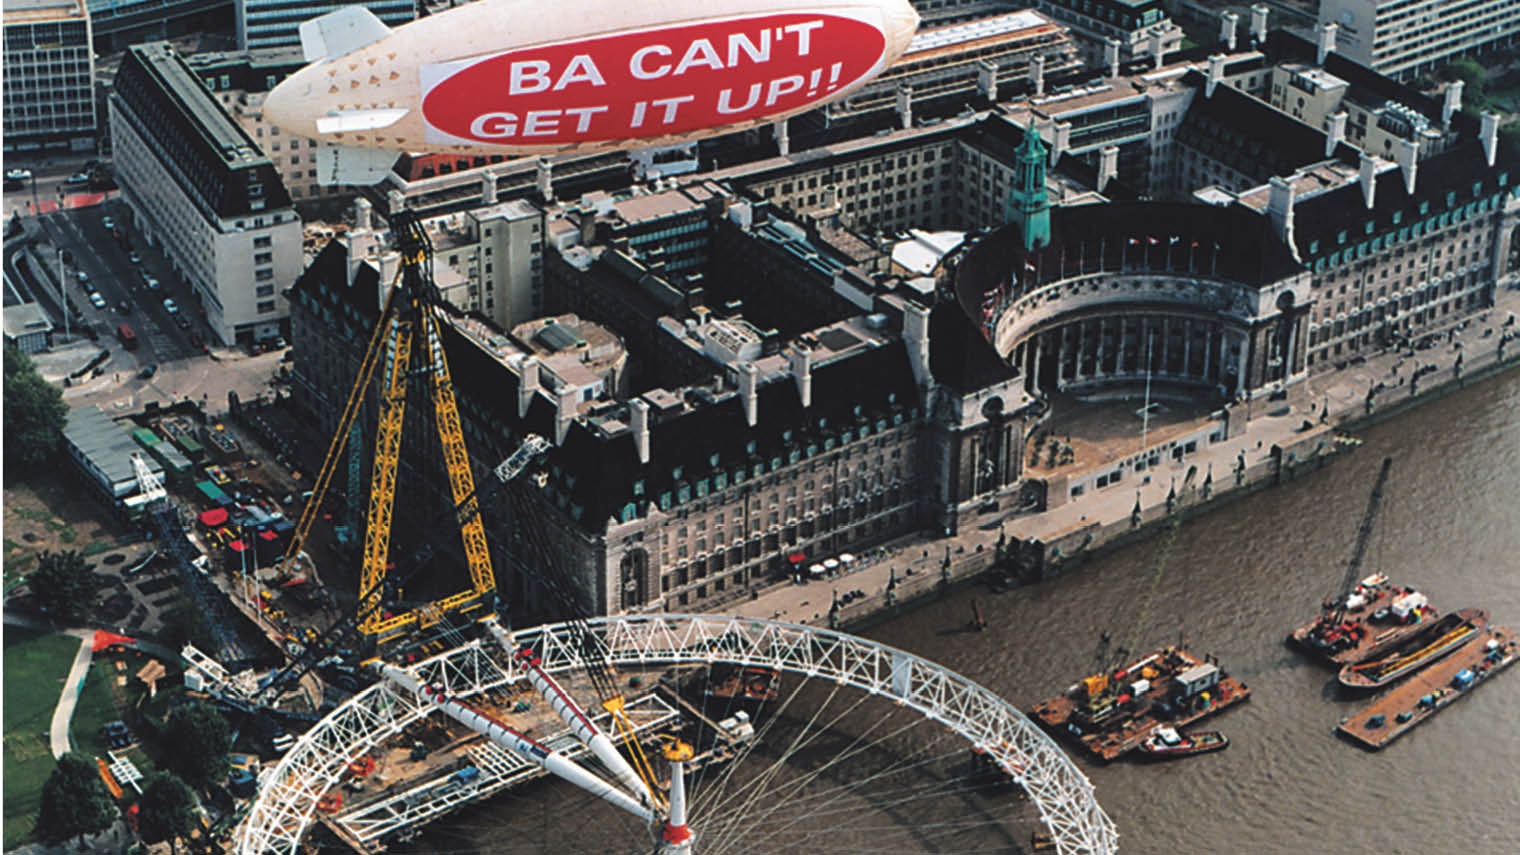 """Virgin blimp displays the sign """"BA can't get it up!!"""" after the then British Airwayssponsored London Eye had a technical problem erecting the wheel"""